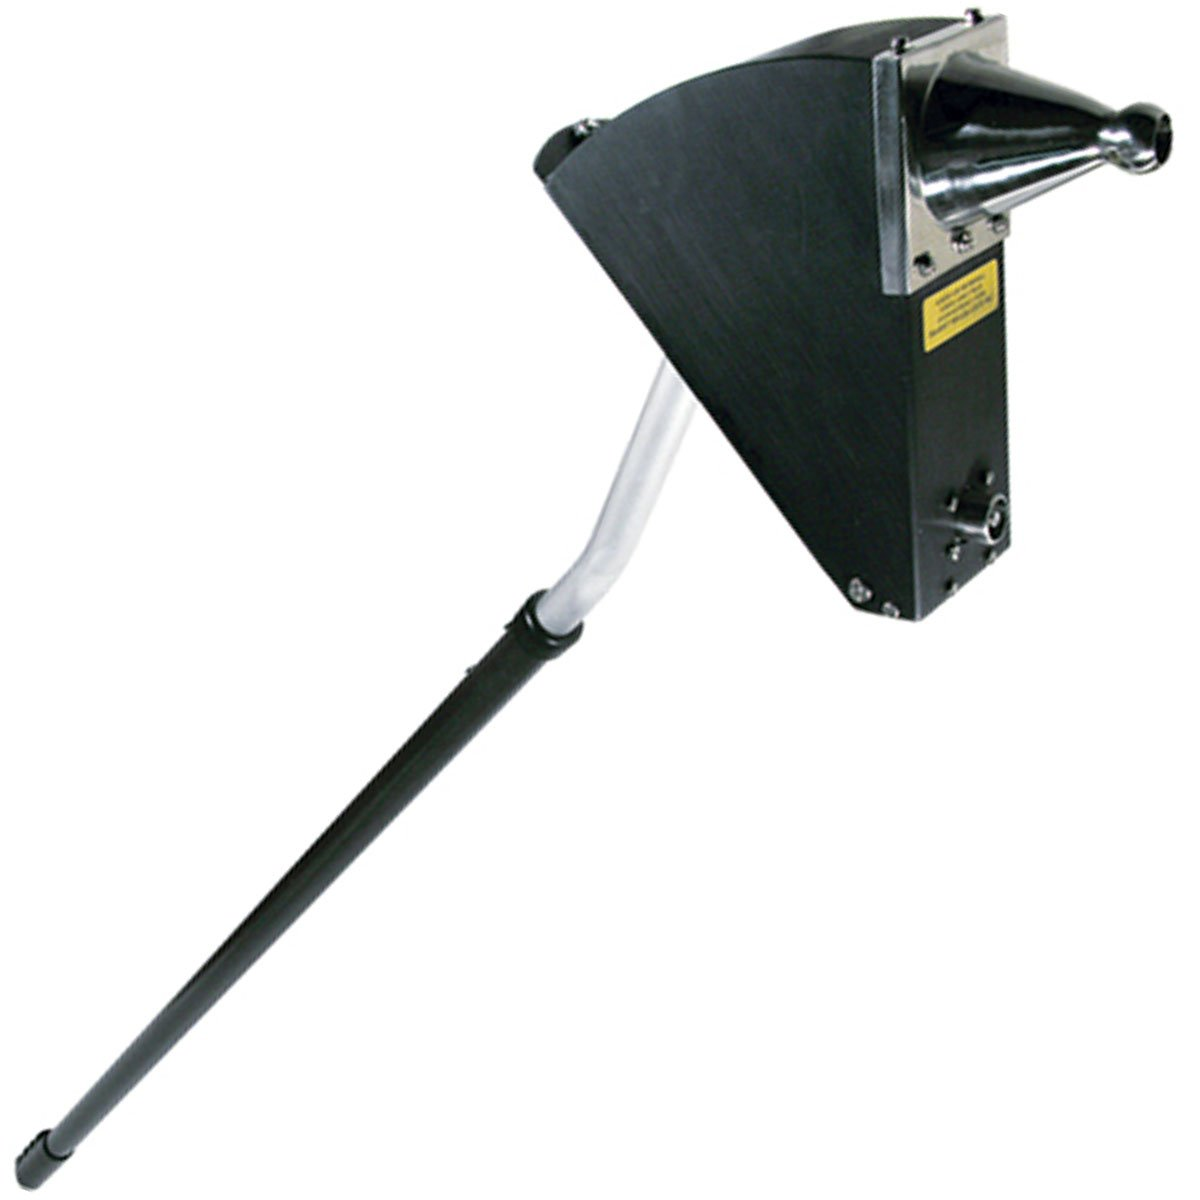 Drywall Master Angle Box Corner Applicator - Made in USA (7-Inch with Handle)